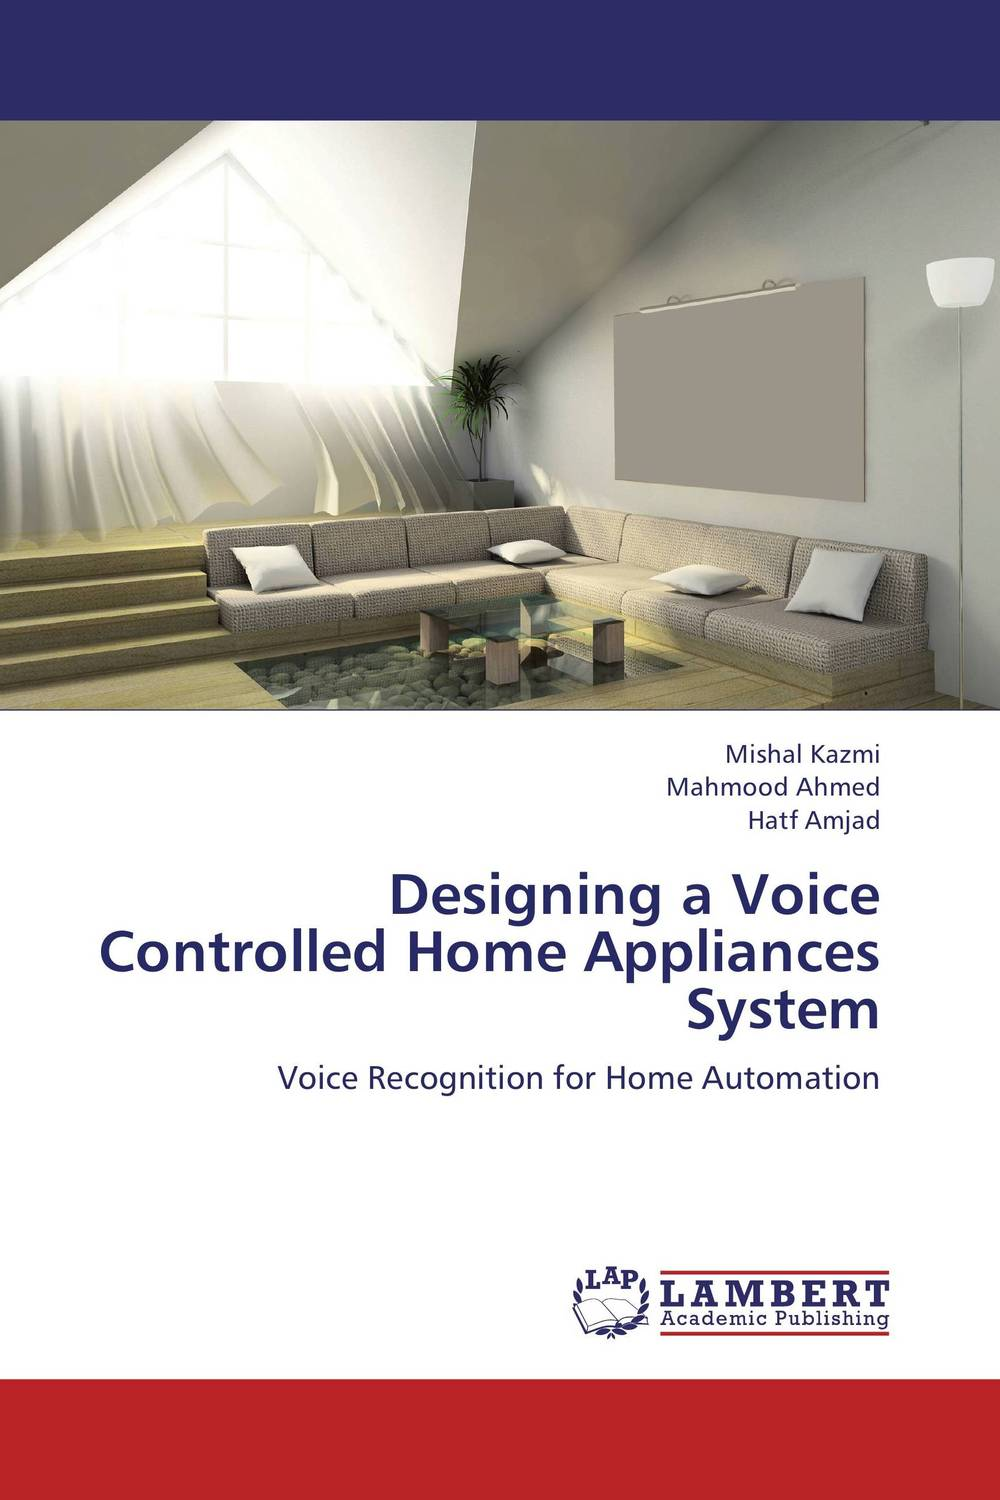 Designing a Voice Controlled Home Appliances System cerebral palsy speech recognition system